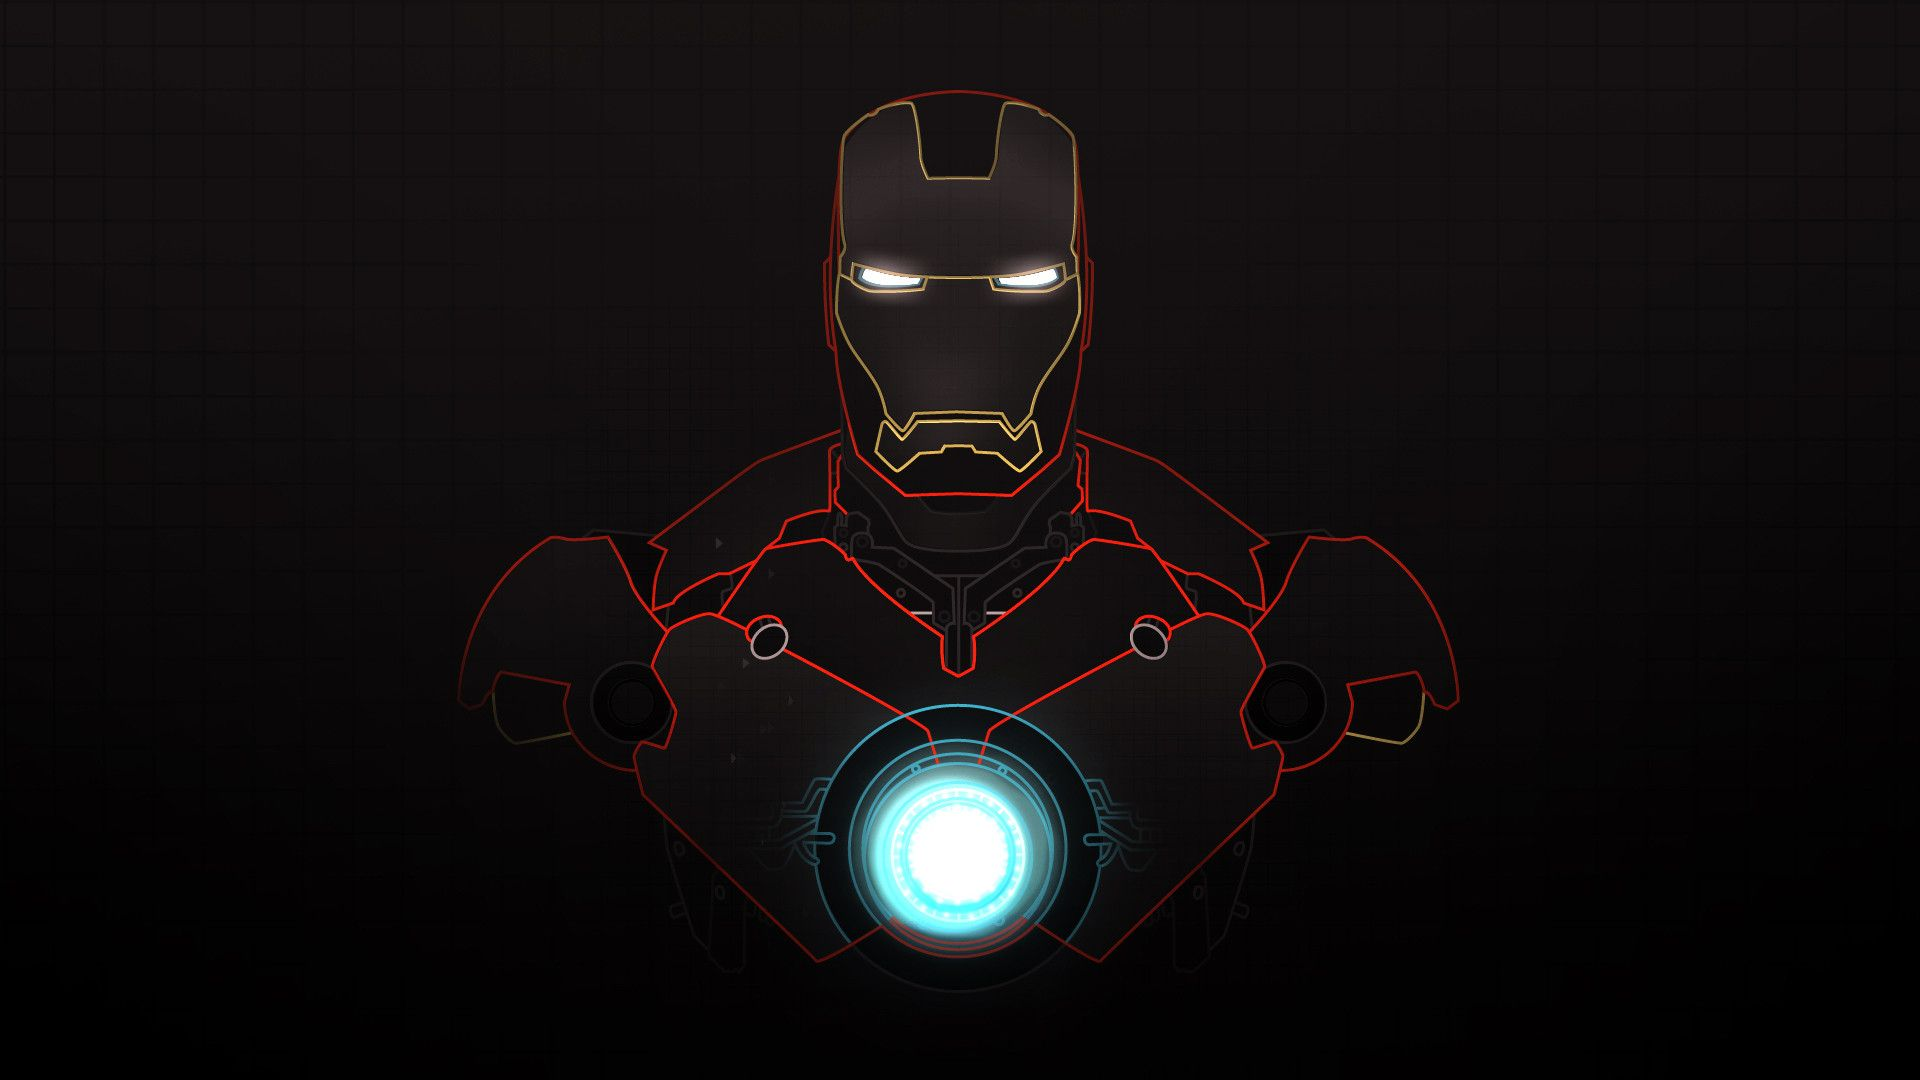 Wallpaper Iron Man 48 Wallpapers Hd Wallpapers Iron